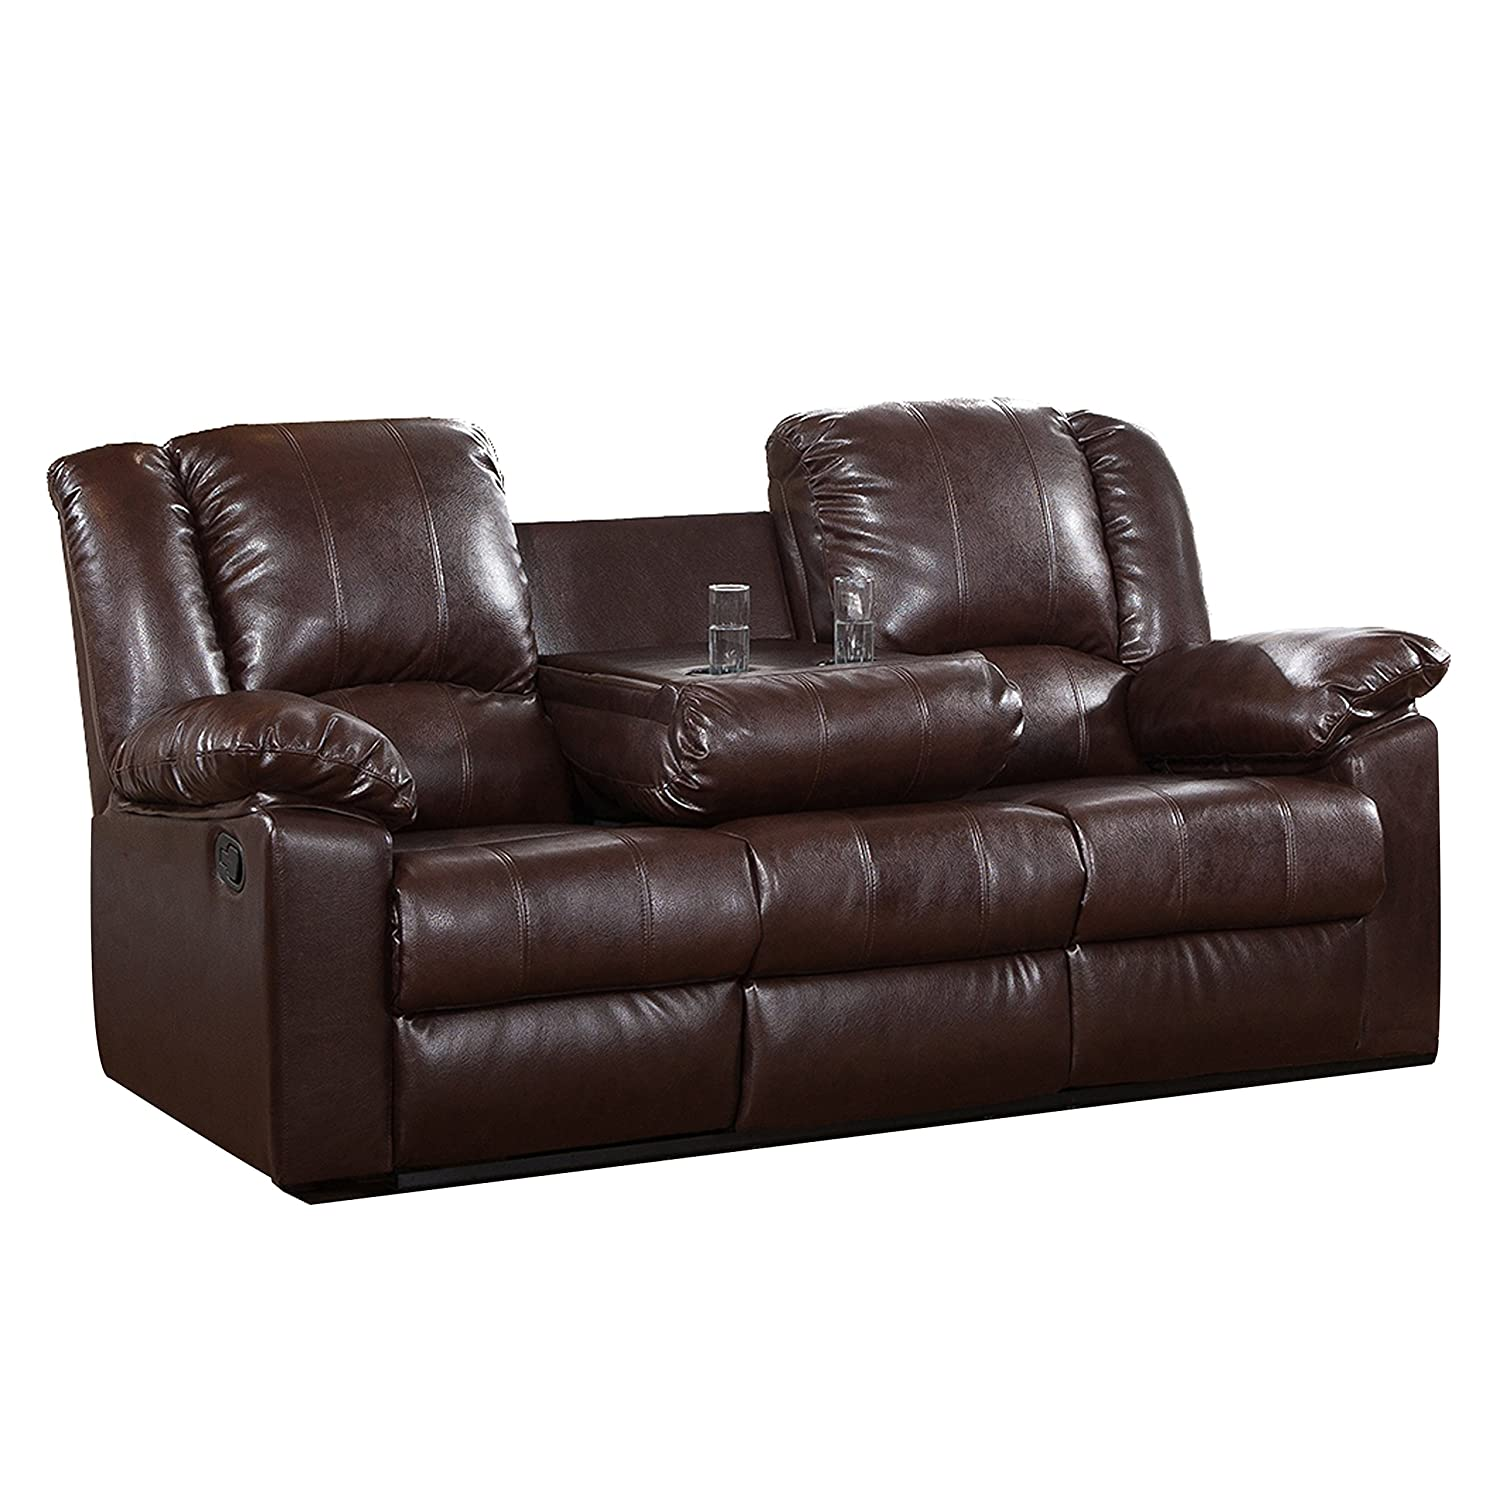 of reclining electric choosing sofa for recliners living with room recliner size full leather furniture your furnishing the sectional tips